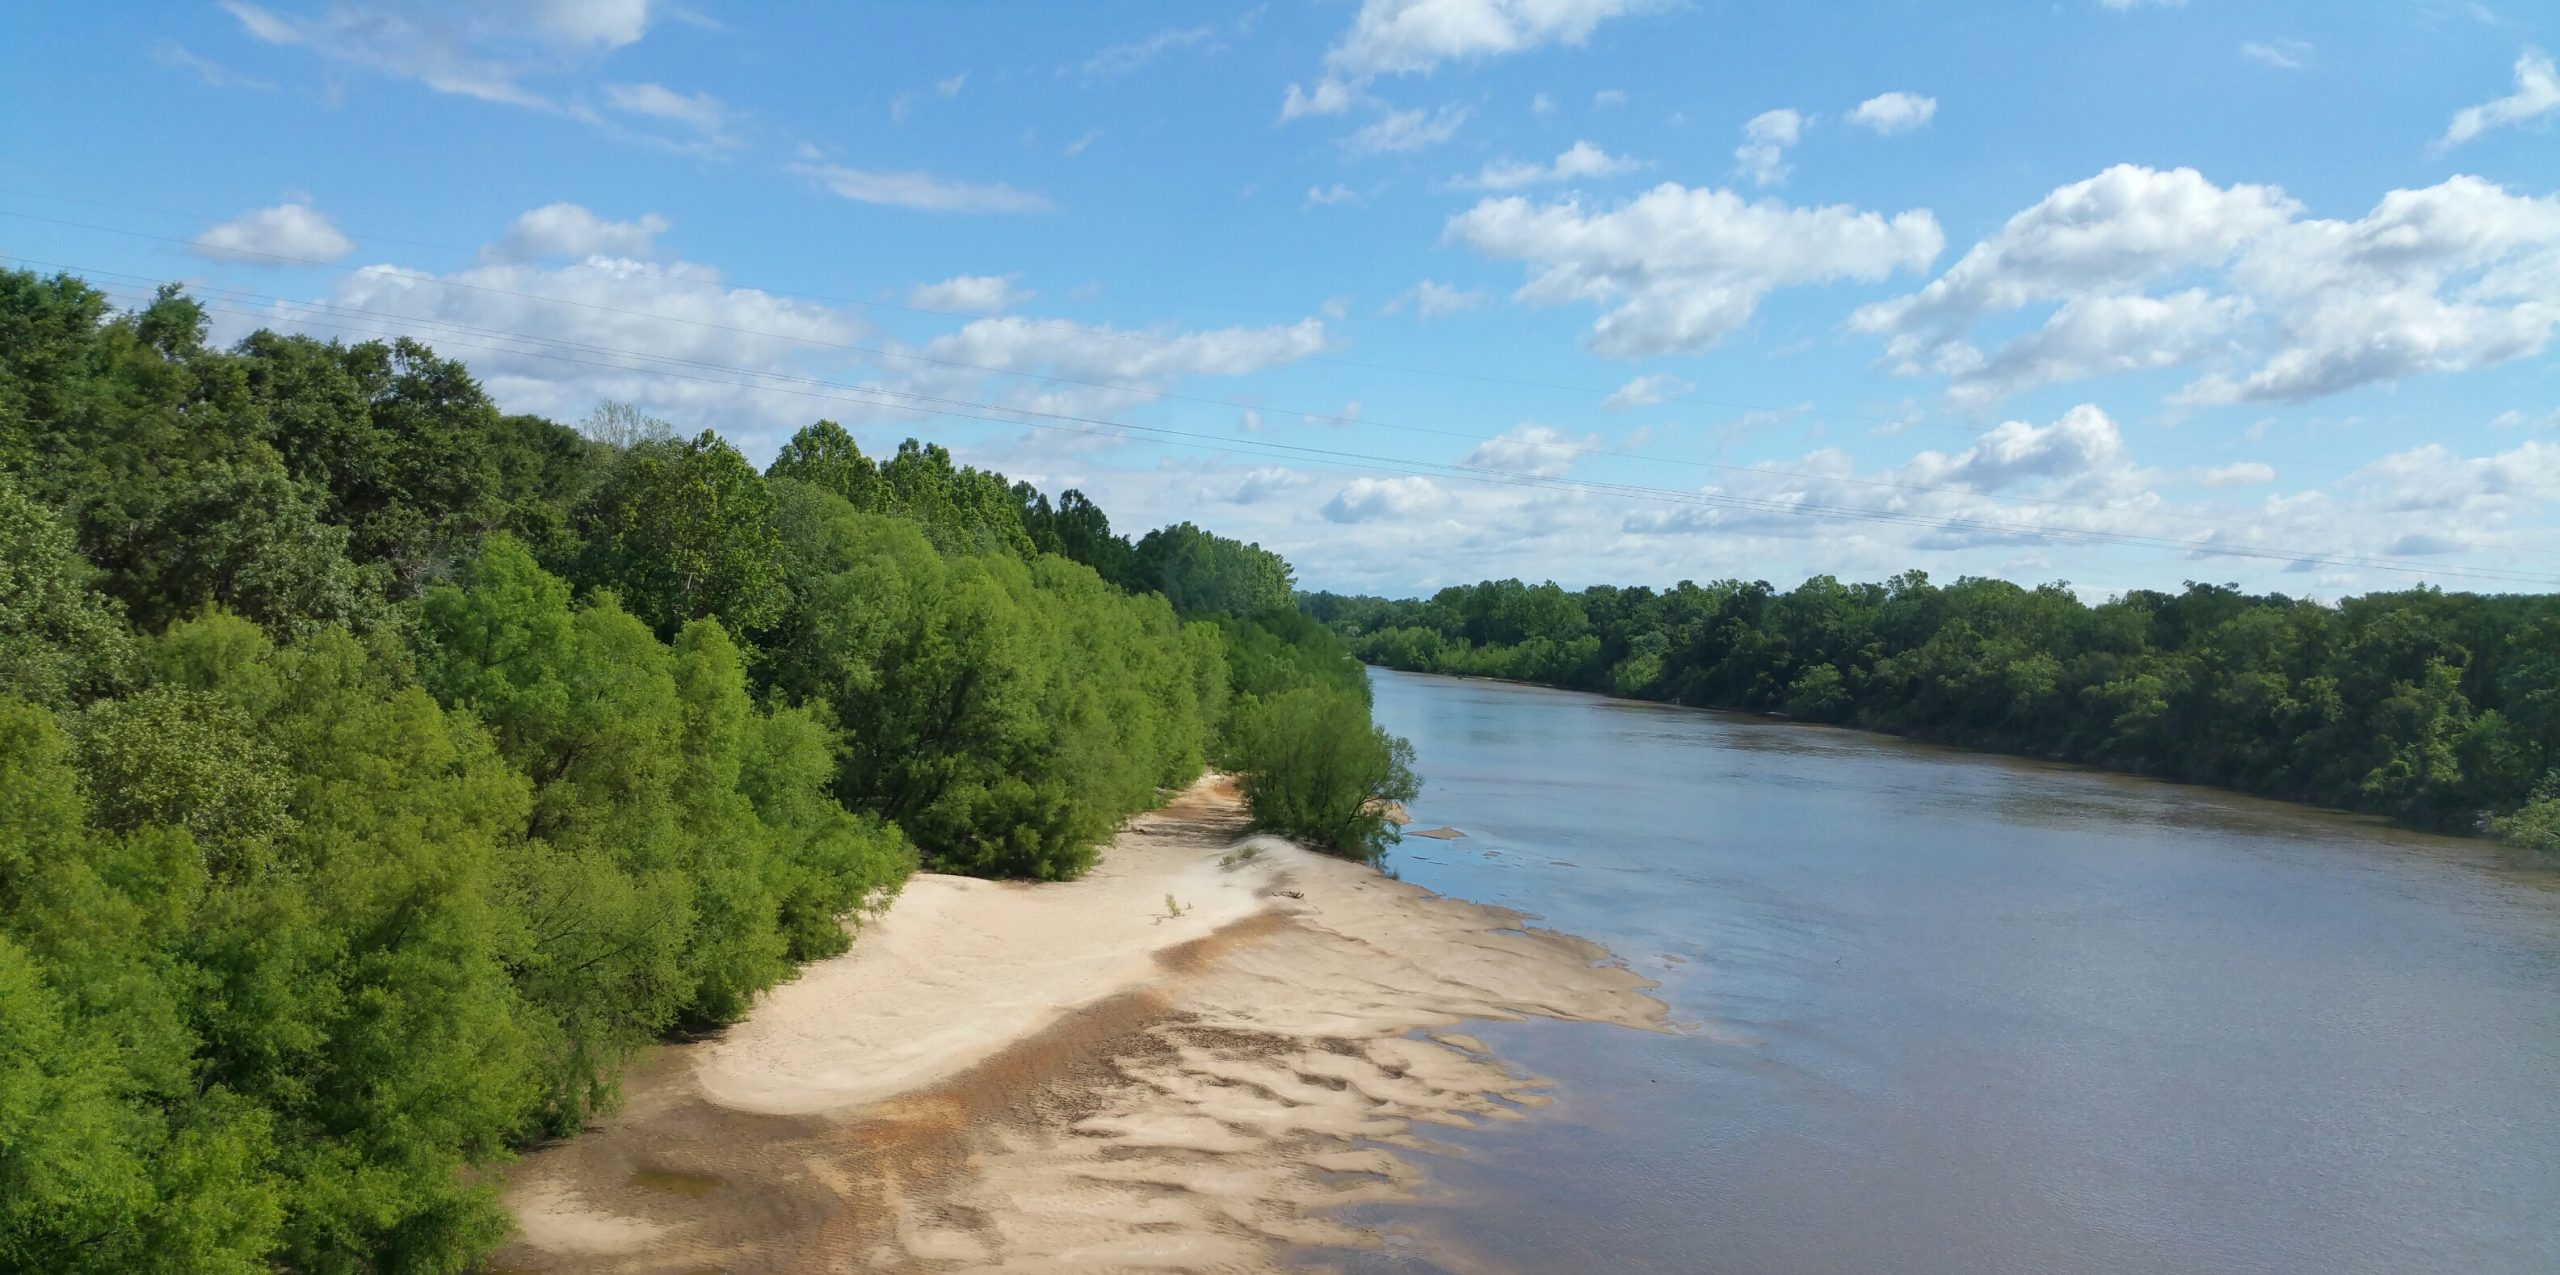 Apalachicola River under blue sky with trees on riverbank